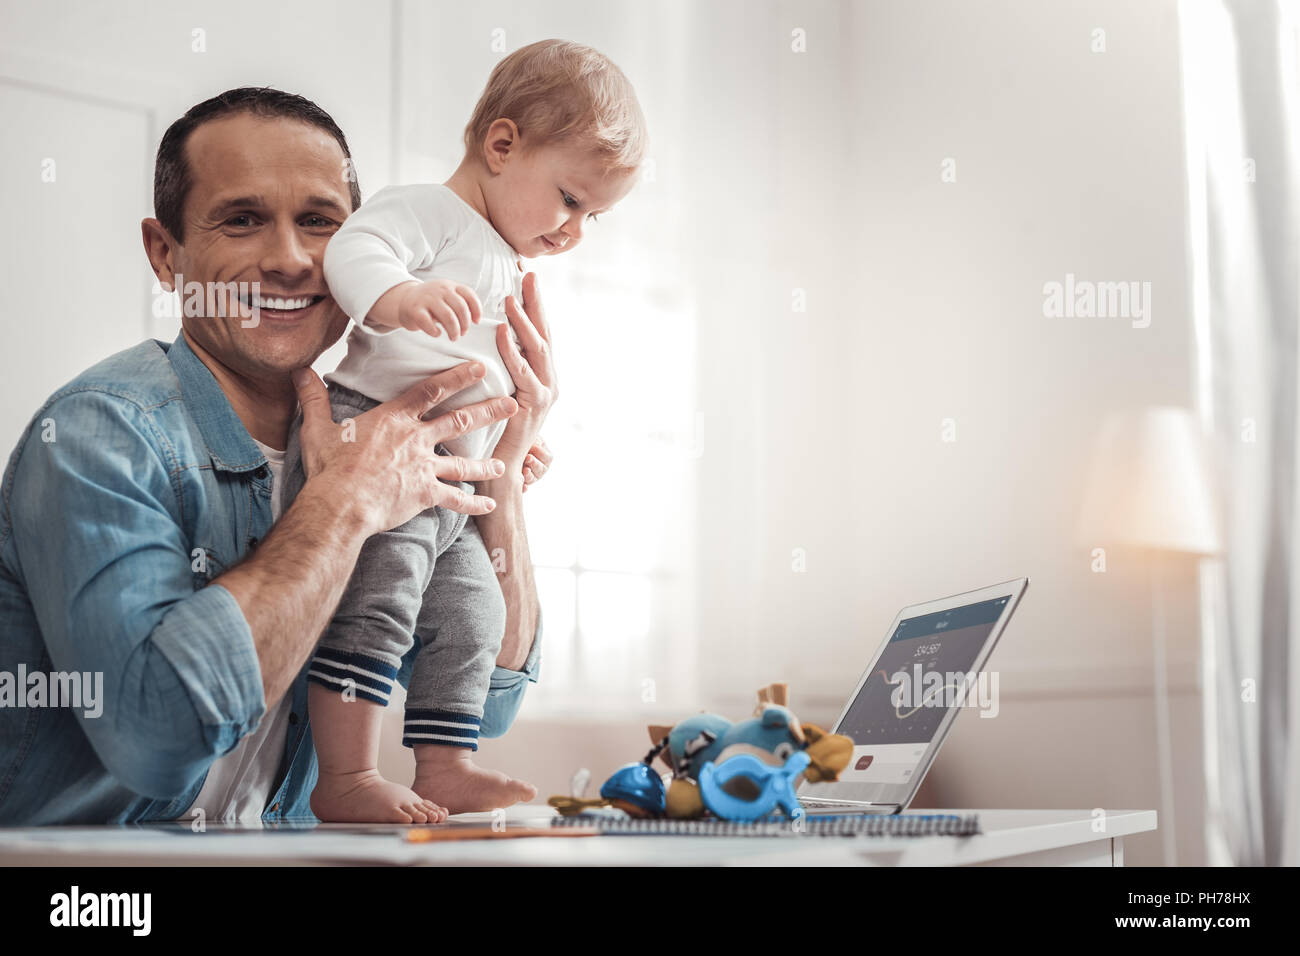 Happy cheerful man holding his child - Stock Image